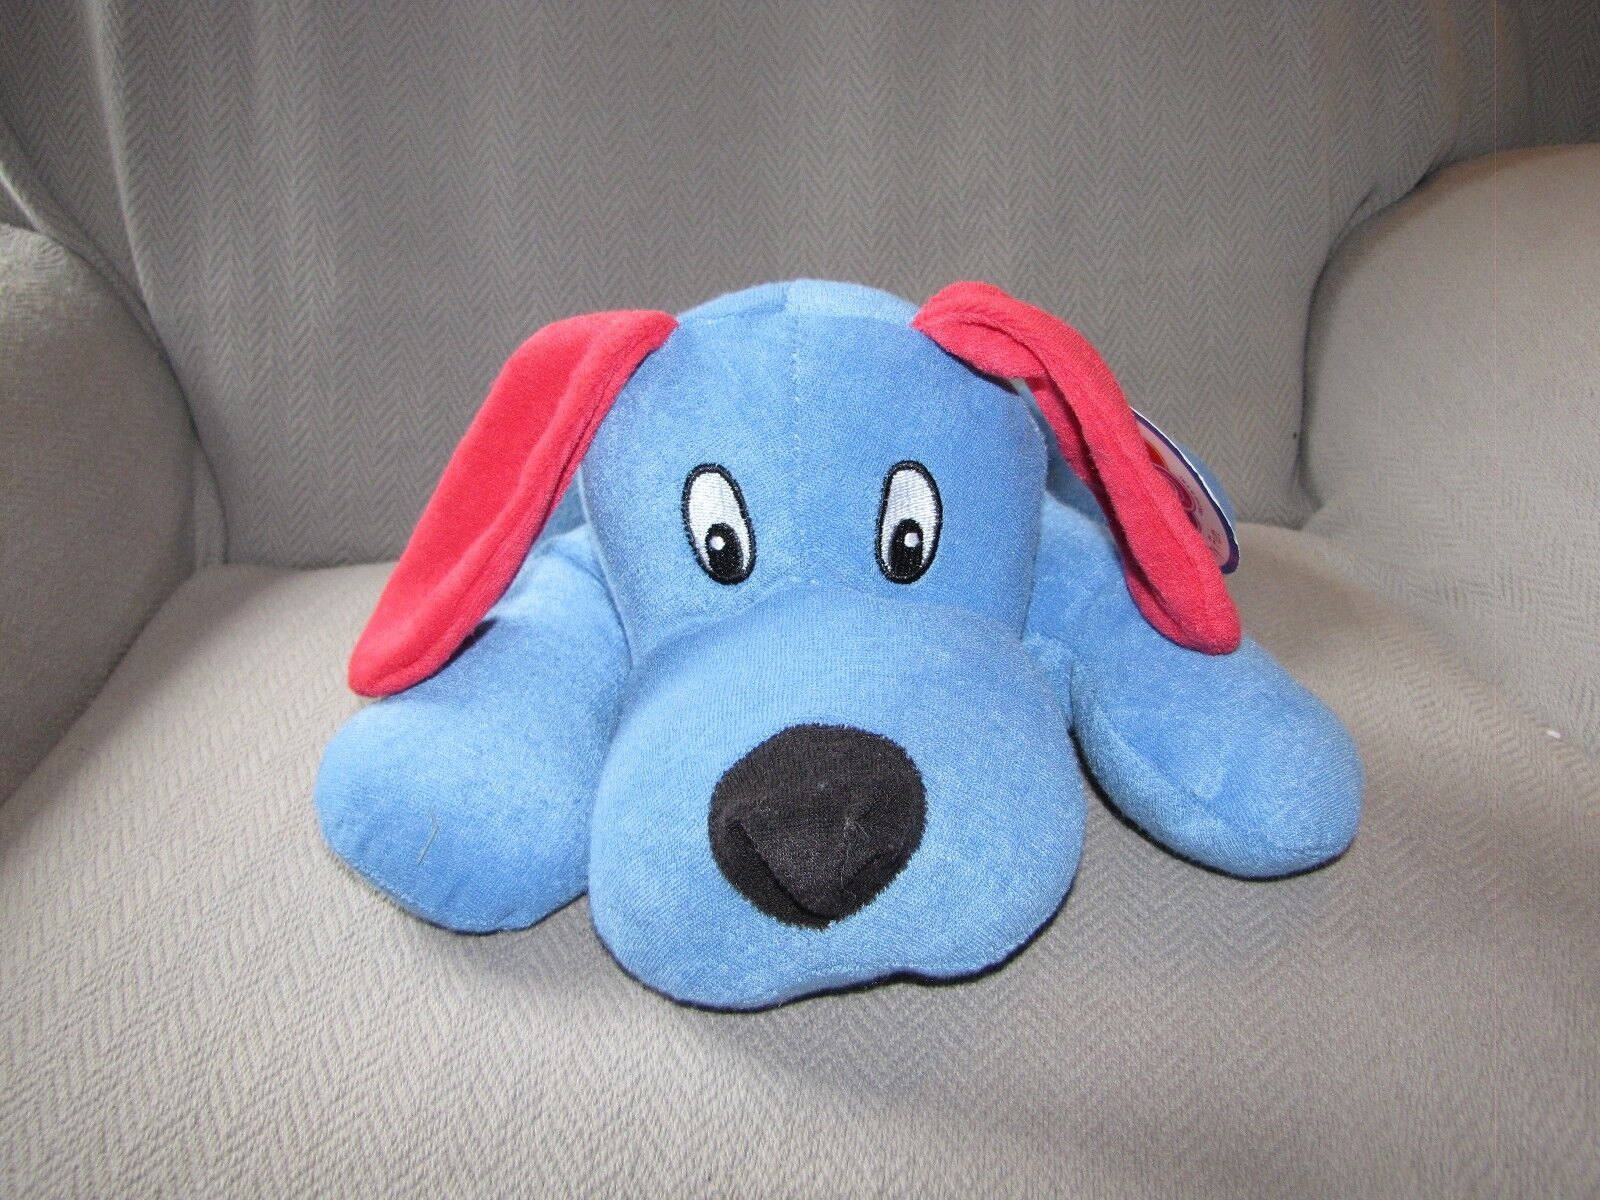 NANCO TERRYCLOTH TERRY STUFFED PLUSH PUPPY DOG blu rosso PV-TLD14 NEW